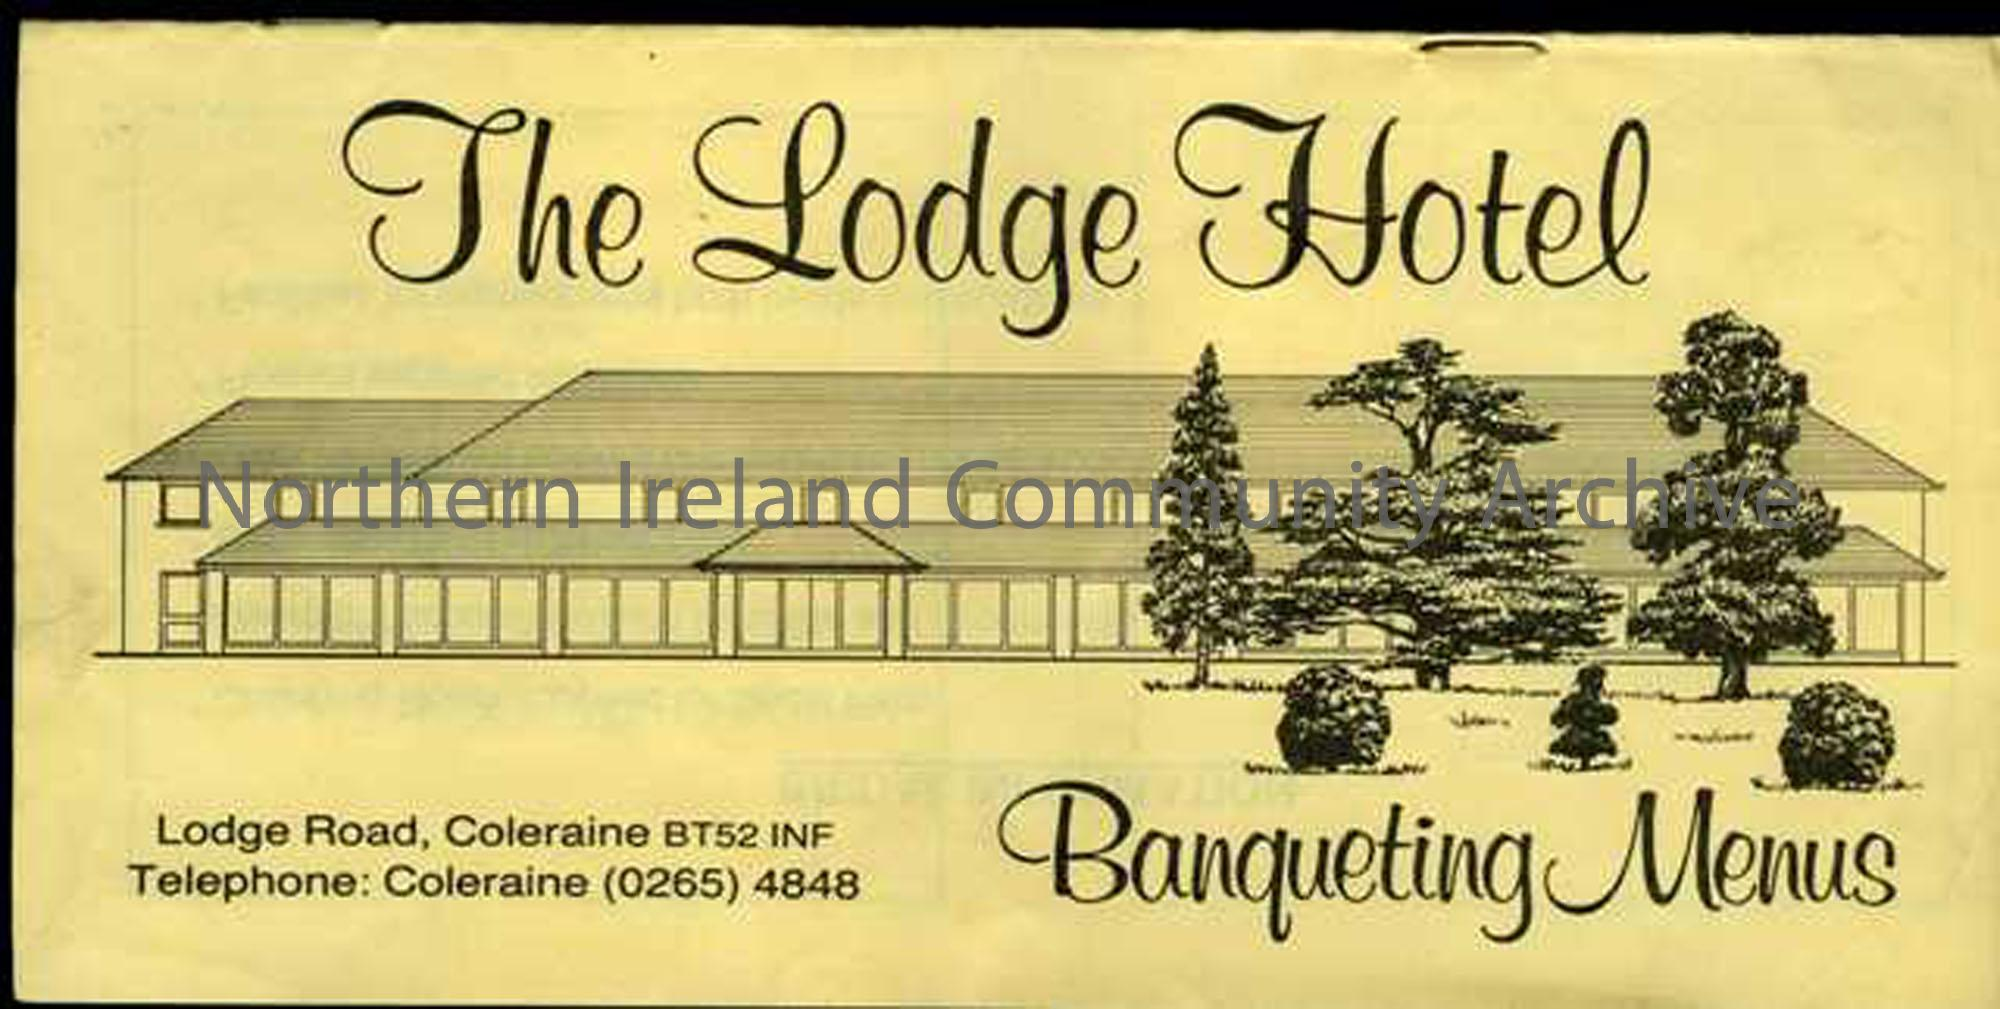 Menu for the Lodge Hotel, Coleraine